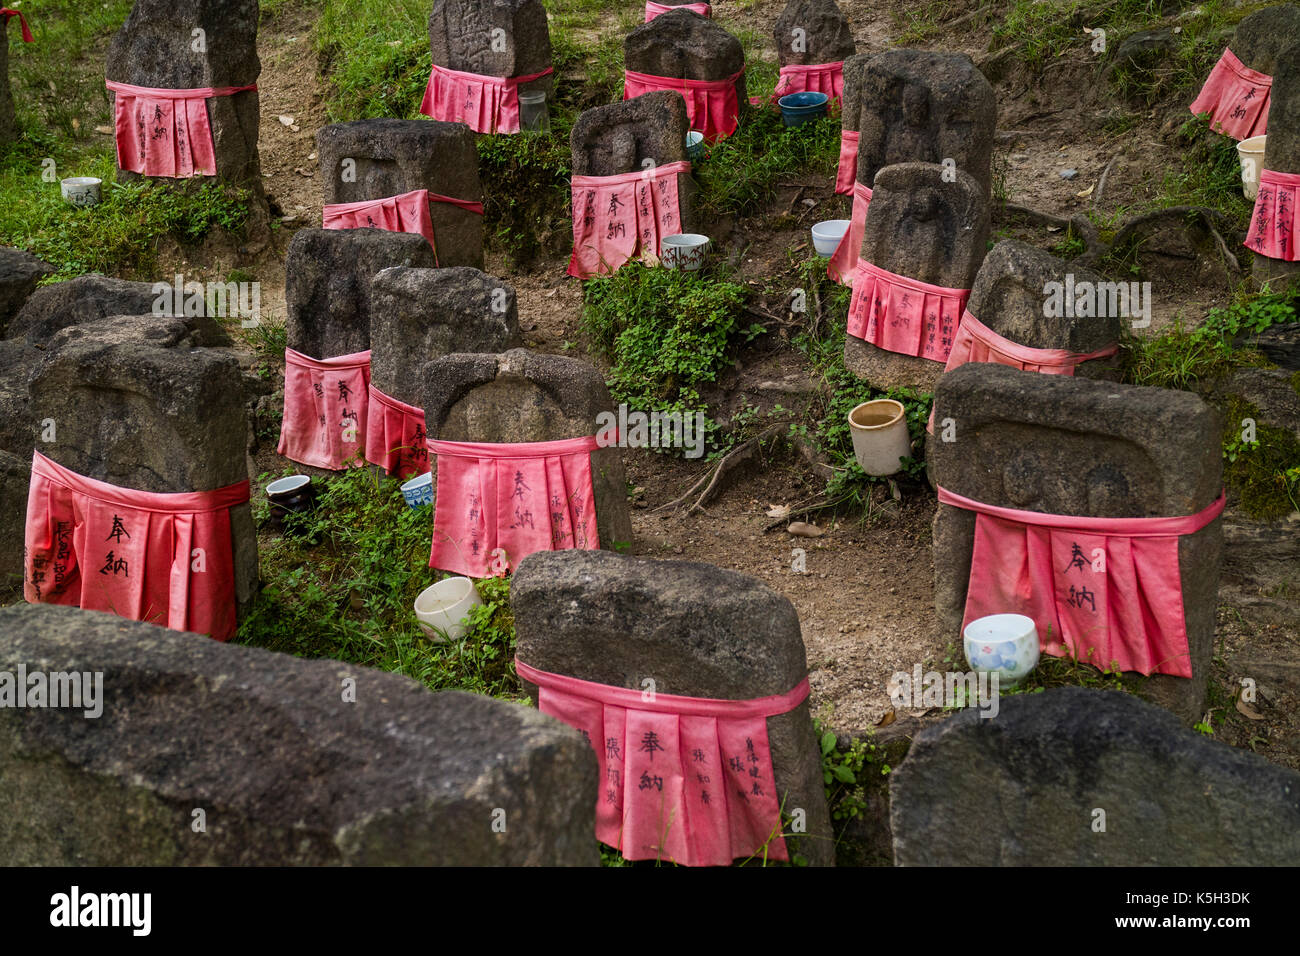 Nara - Japan, May 30, 2017: Peaceful stone relegious Jizo statues with red skirts in the garden - Stock Image